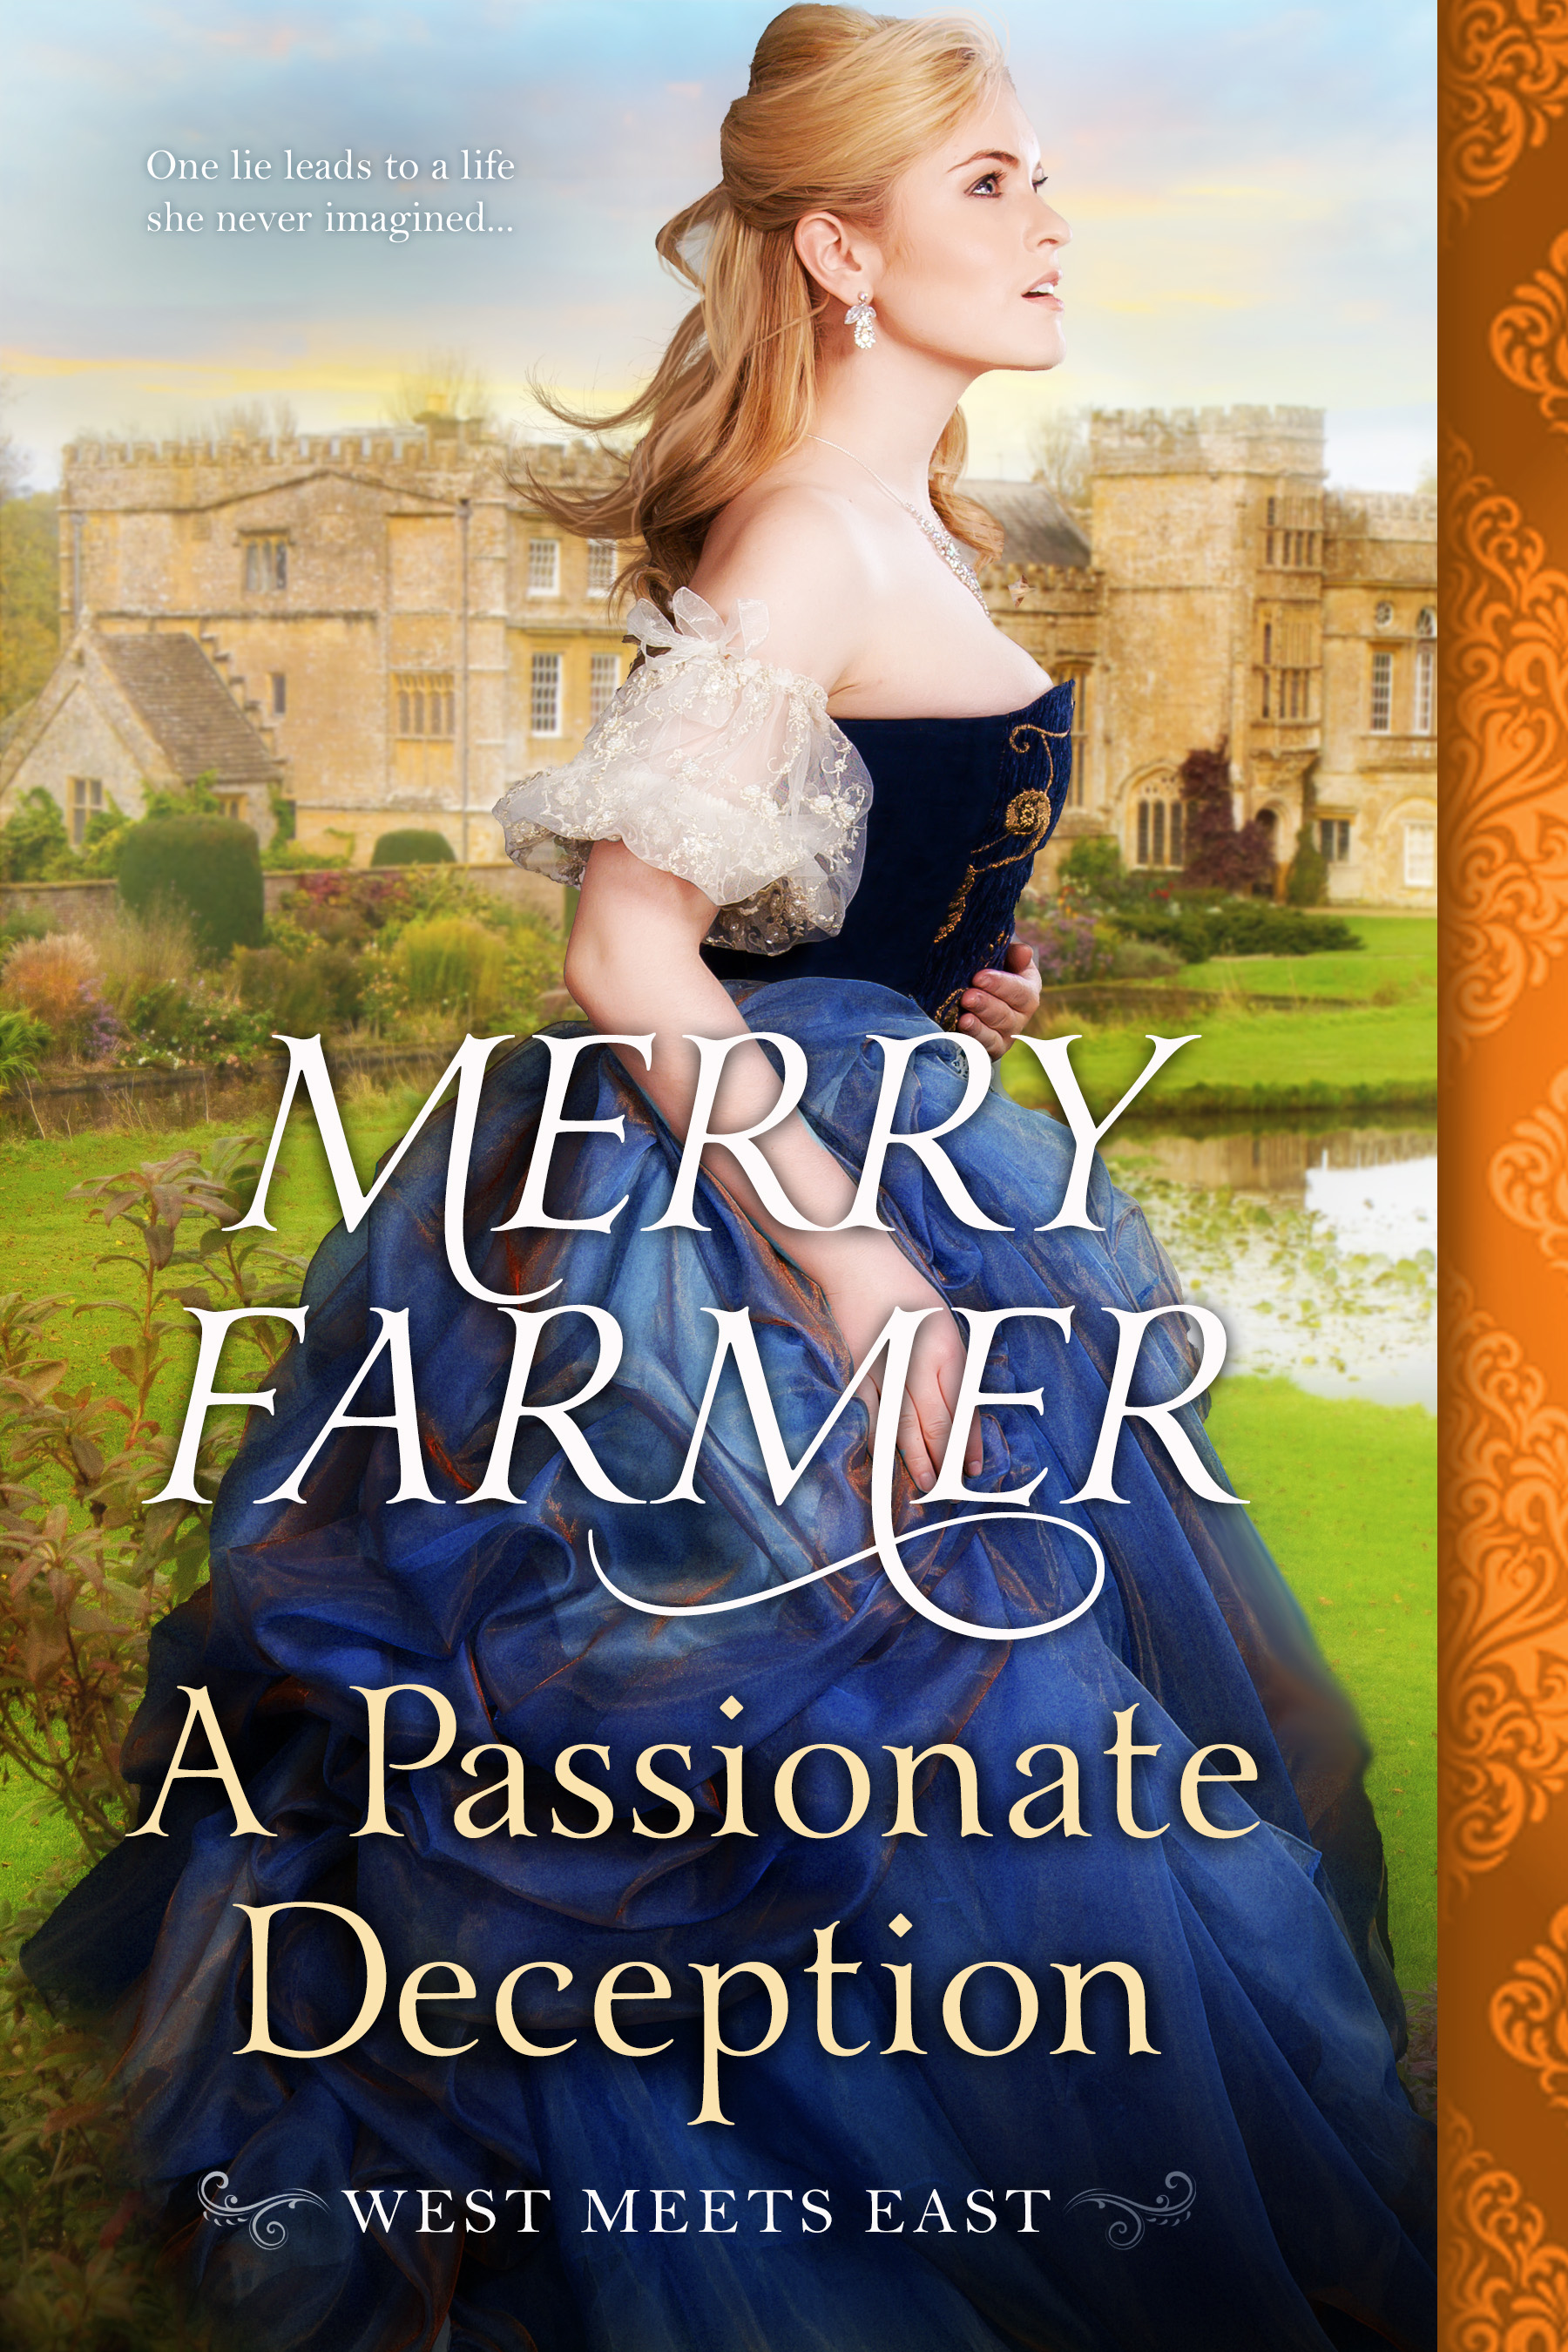 A Passionate Deception (Book 5) - Ellie Braun is on her way from the Old West to England to start a new life as lady's maid to American heiress Helena Mortimer. But when Helena runs off with one of the porters from the ship as soon as they dock in London, it's up to Ellie to smooth things over with Lord Henry Howsden, Helena's fiancé. But instead of being disappointed, Lord Henry concocts a plan for Ellie to impersonate Helena in order to fool his family. A former soiled dove pretending to be a wealthy heiress in the household of a marquis? What could go wrong?Henry Howsden has resented his father's attempts to sell him in marriage to a woman he's never seen from day one. By introducing Ellie to his family as Miss Mortimer, letting them fall in love with her, then revealing her true identity, he intends to prove to them that common people have worth, and that marriage is not a game. But almost from the start, he falls in love with the beautiful, clever, and free-spirited Ellie. She is everything that he has never been permitted to be, and all too soon he can't imagine a life without her.But the gulf between an ex-prostitute and a British nobleman is an enormous one, and the passion that develops between Ellie and Henry may prove to be as impossible as it is undeniable.PLEASE BE ADVISED: Steam level – HOT